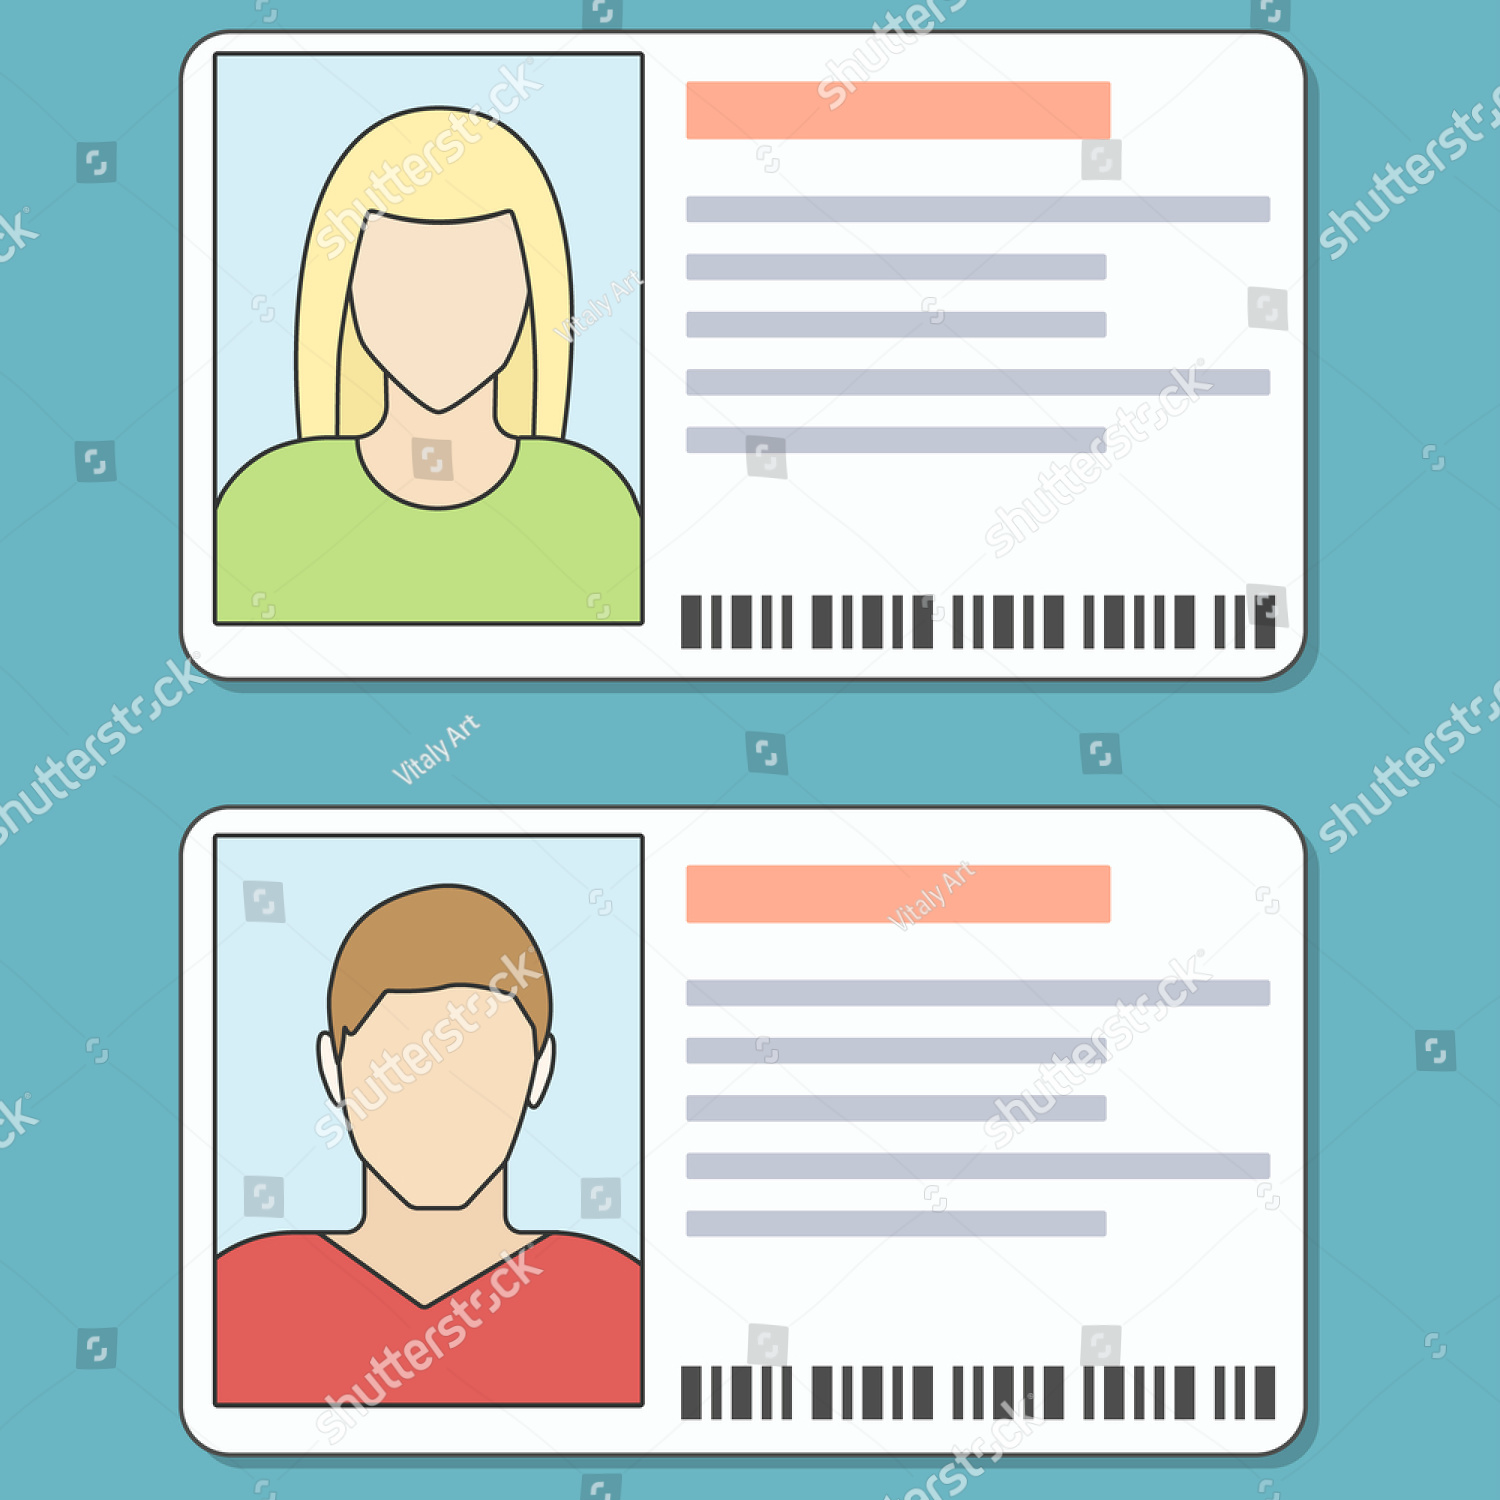 school id badge template - school id badge template image collections professional